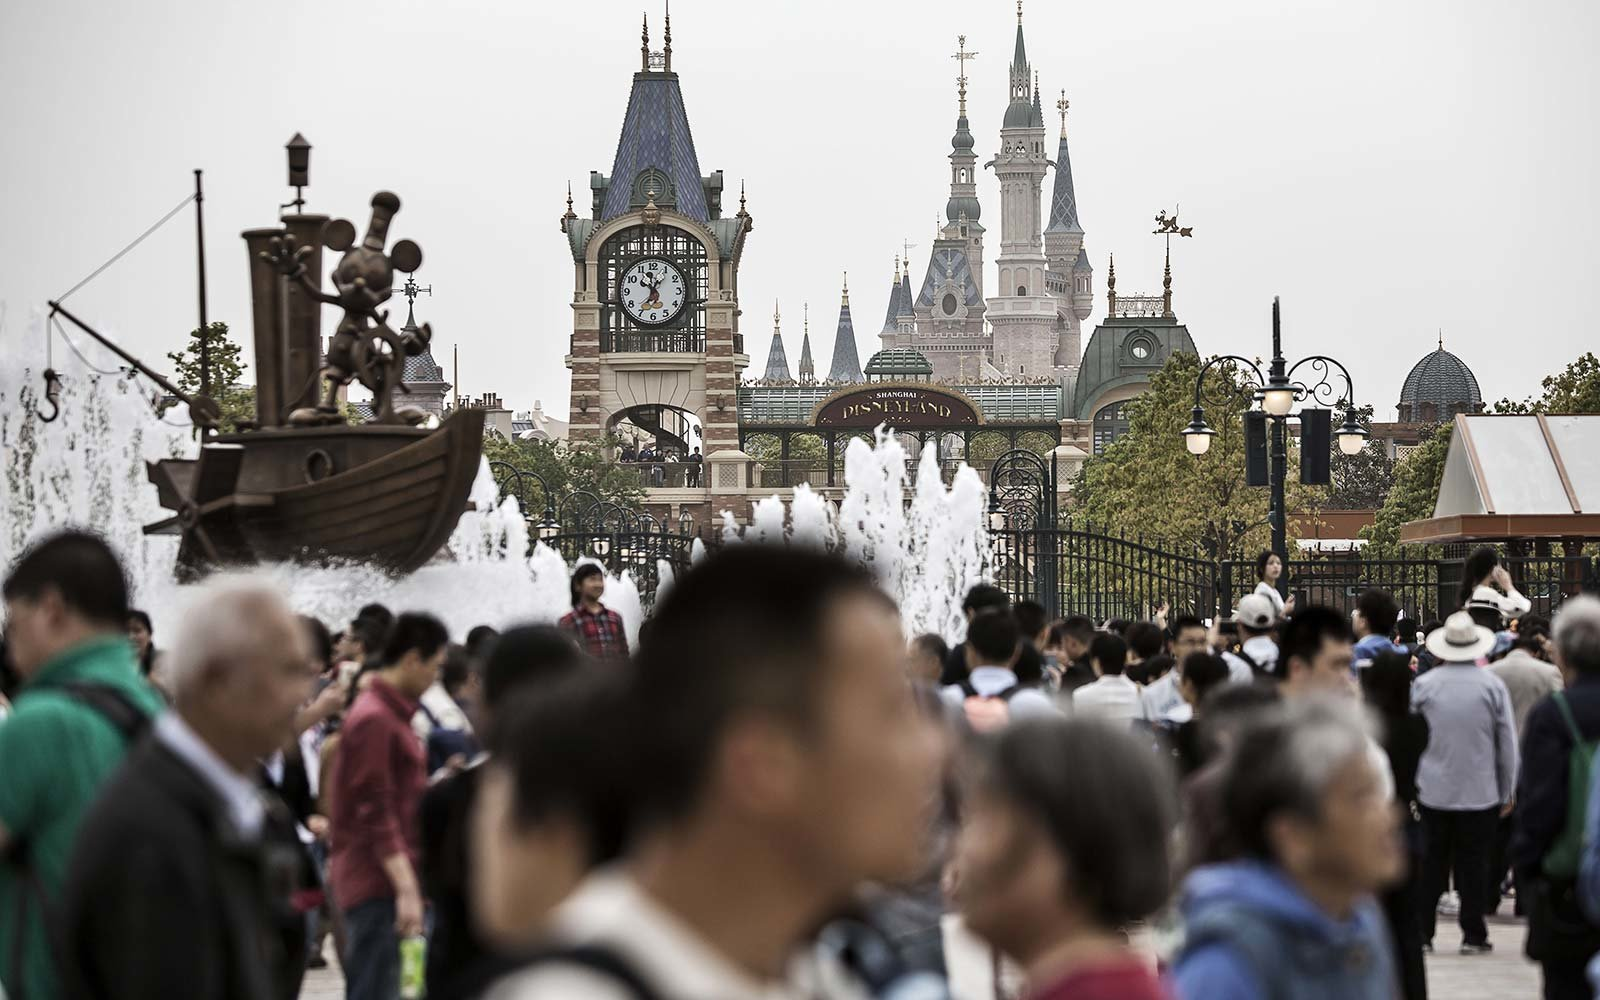 Disneytown - Shanghai, China